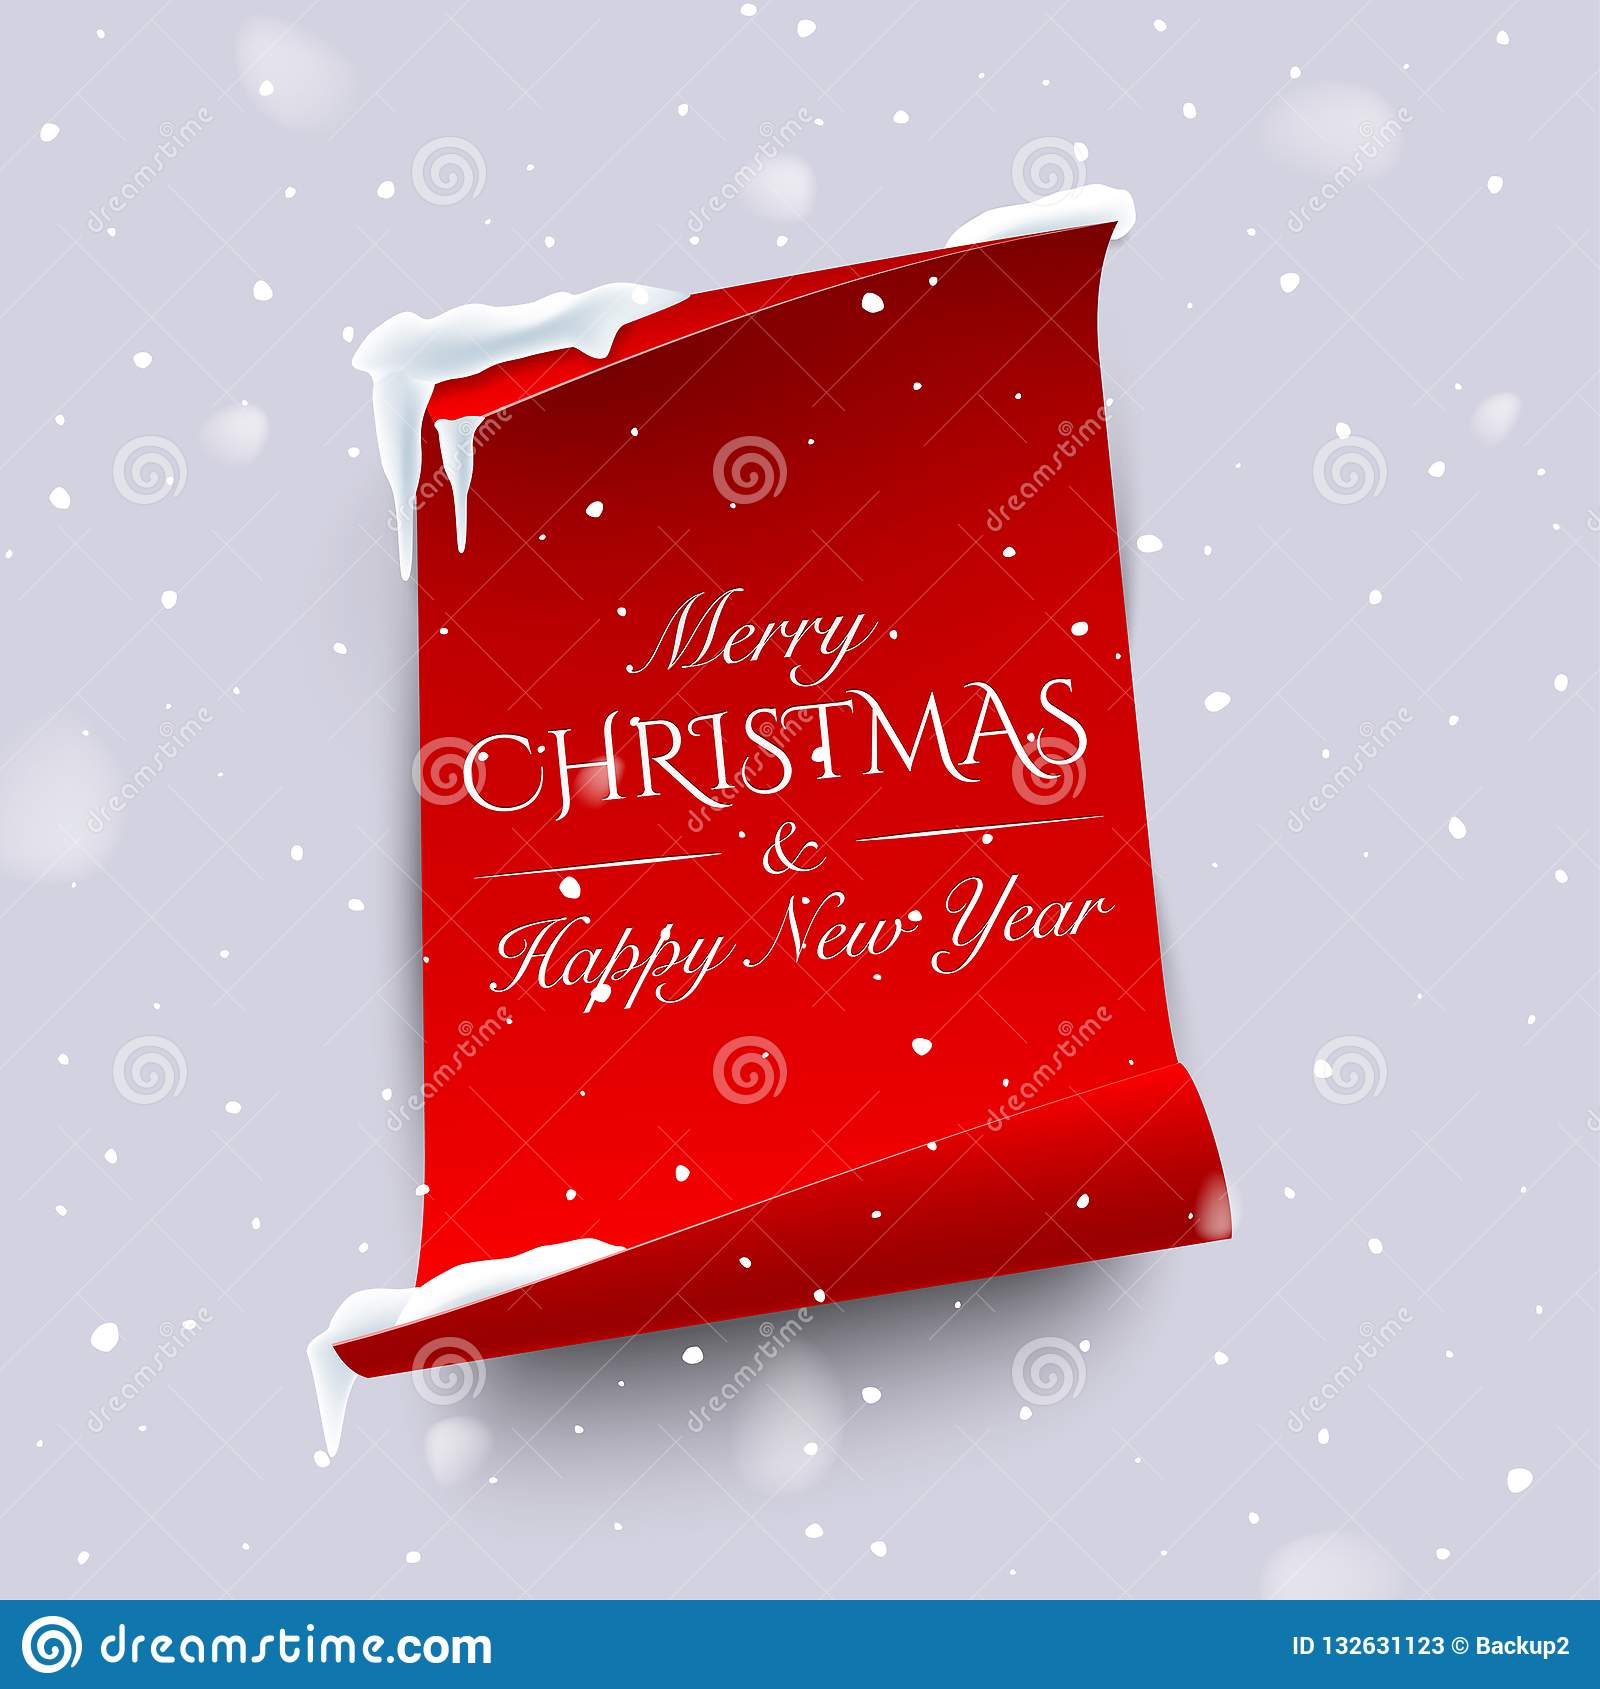 merry christmas and happy new year text on vertical red paper with curved edges isolated on